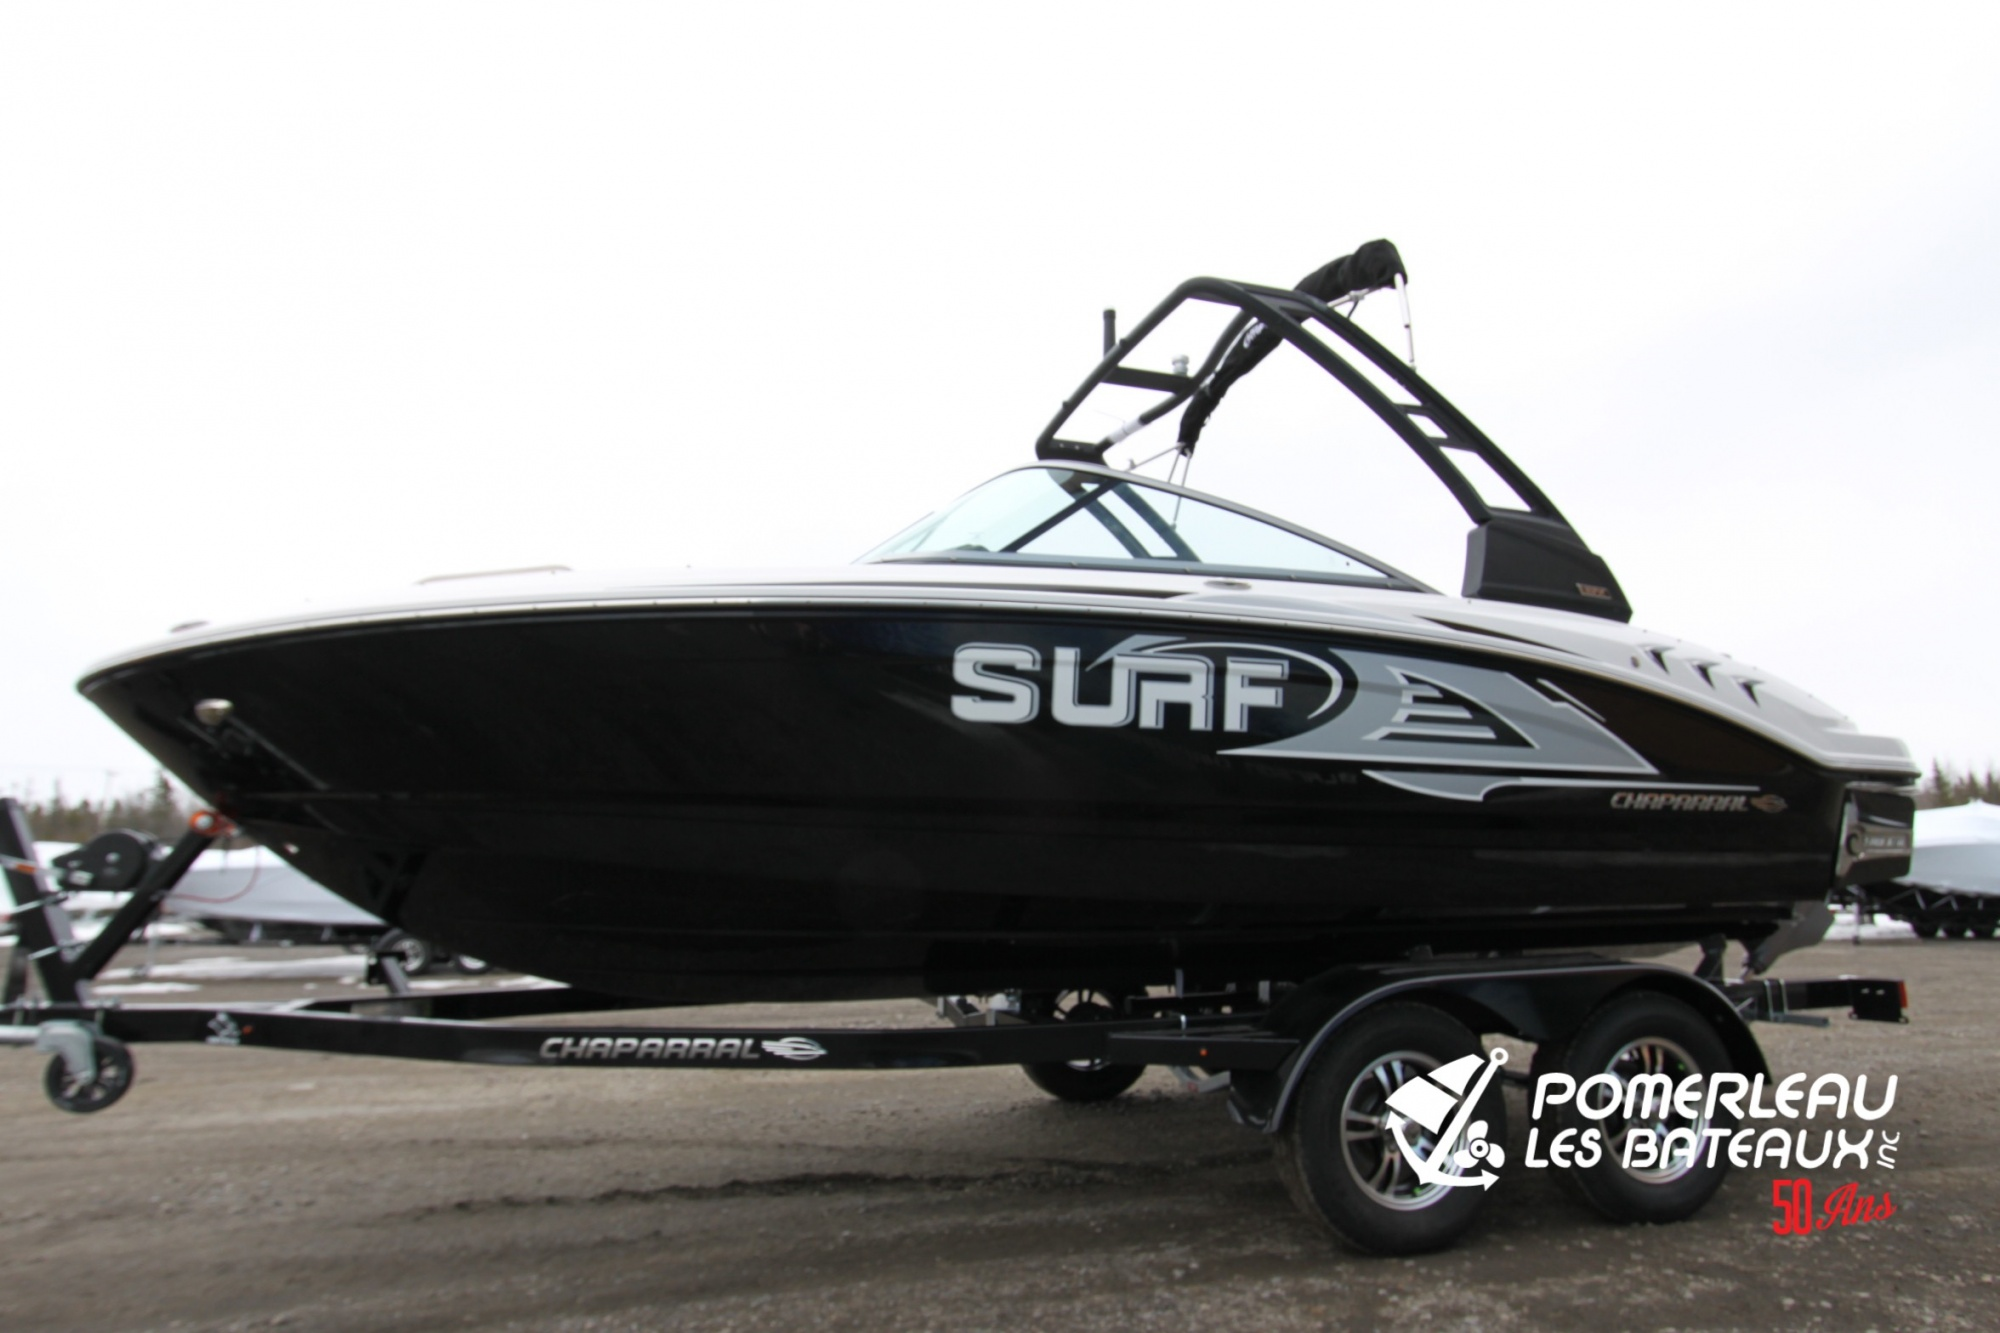 Chaparral 21 Surf - IMG_5149